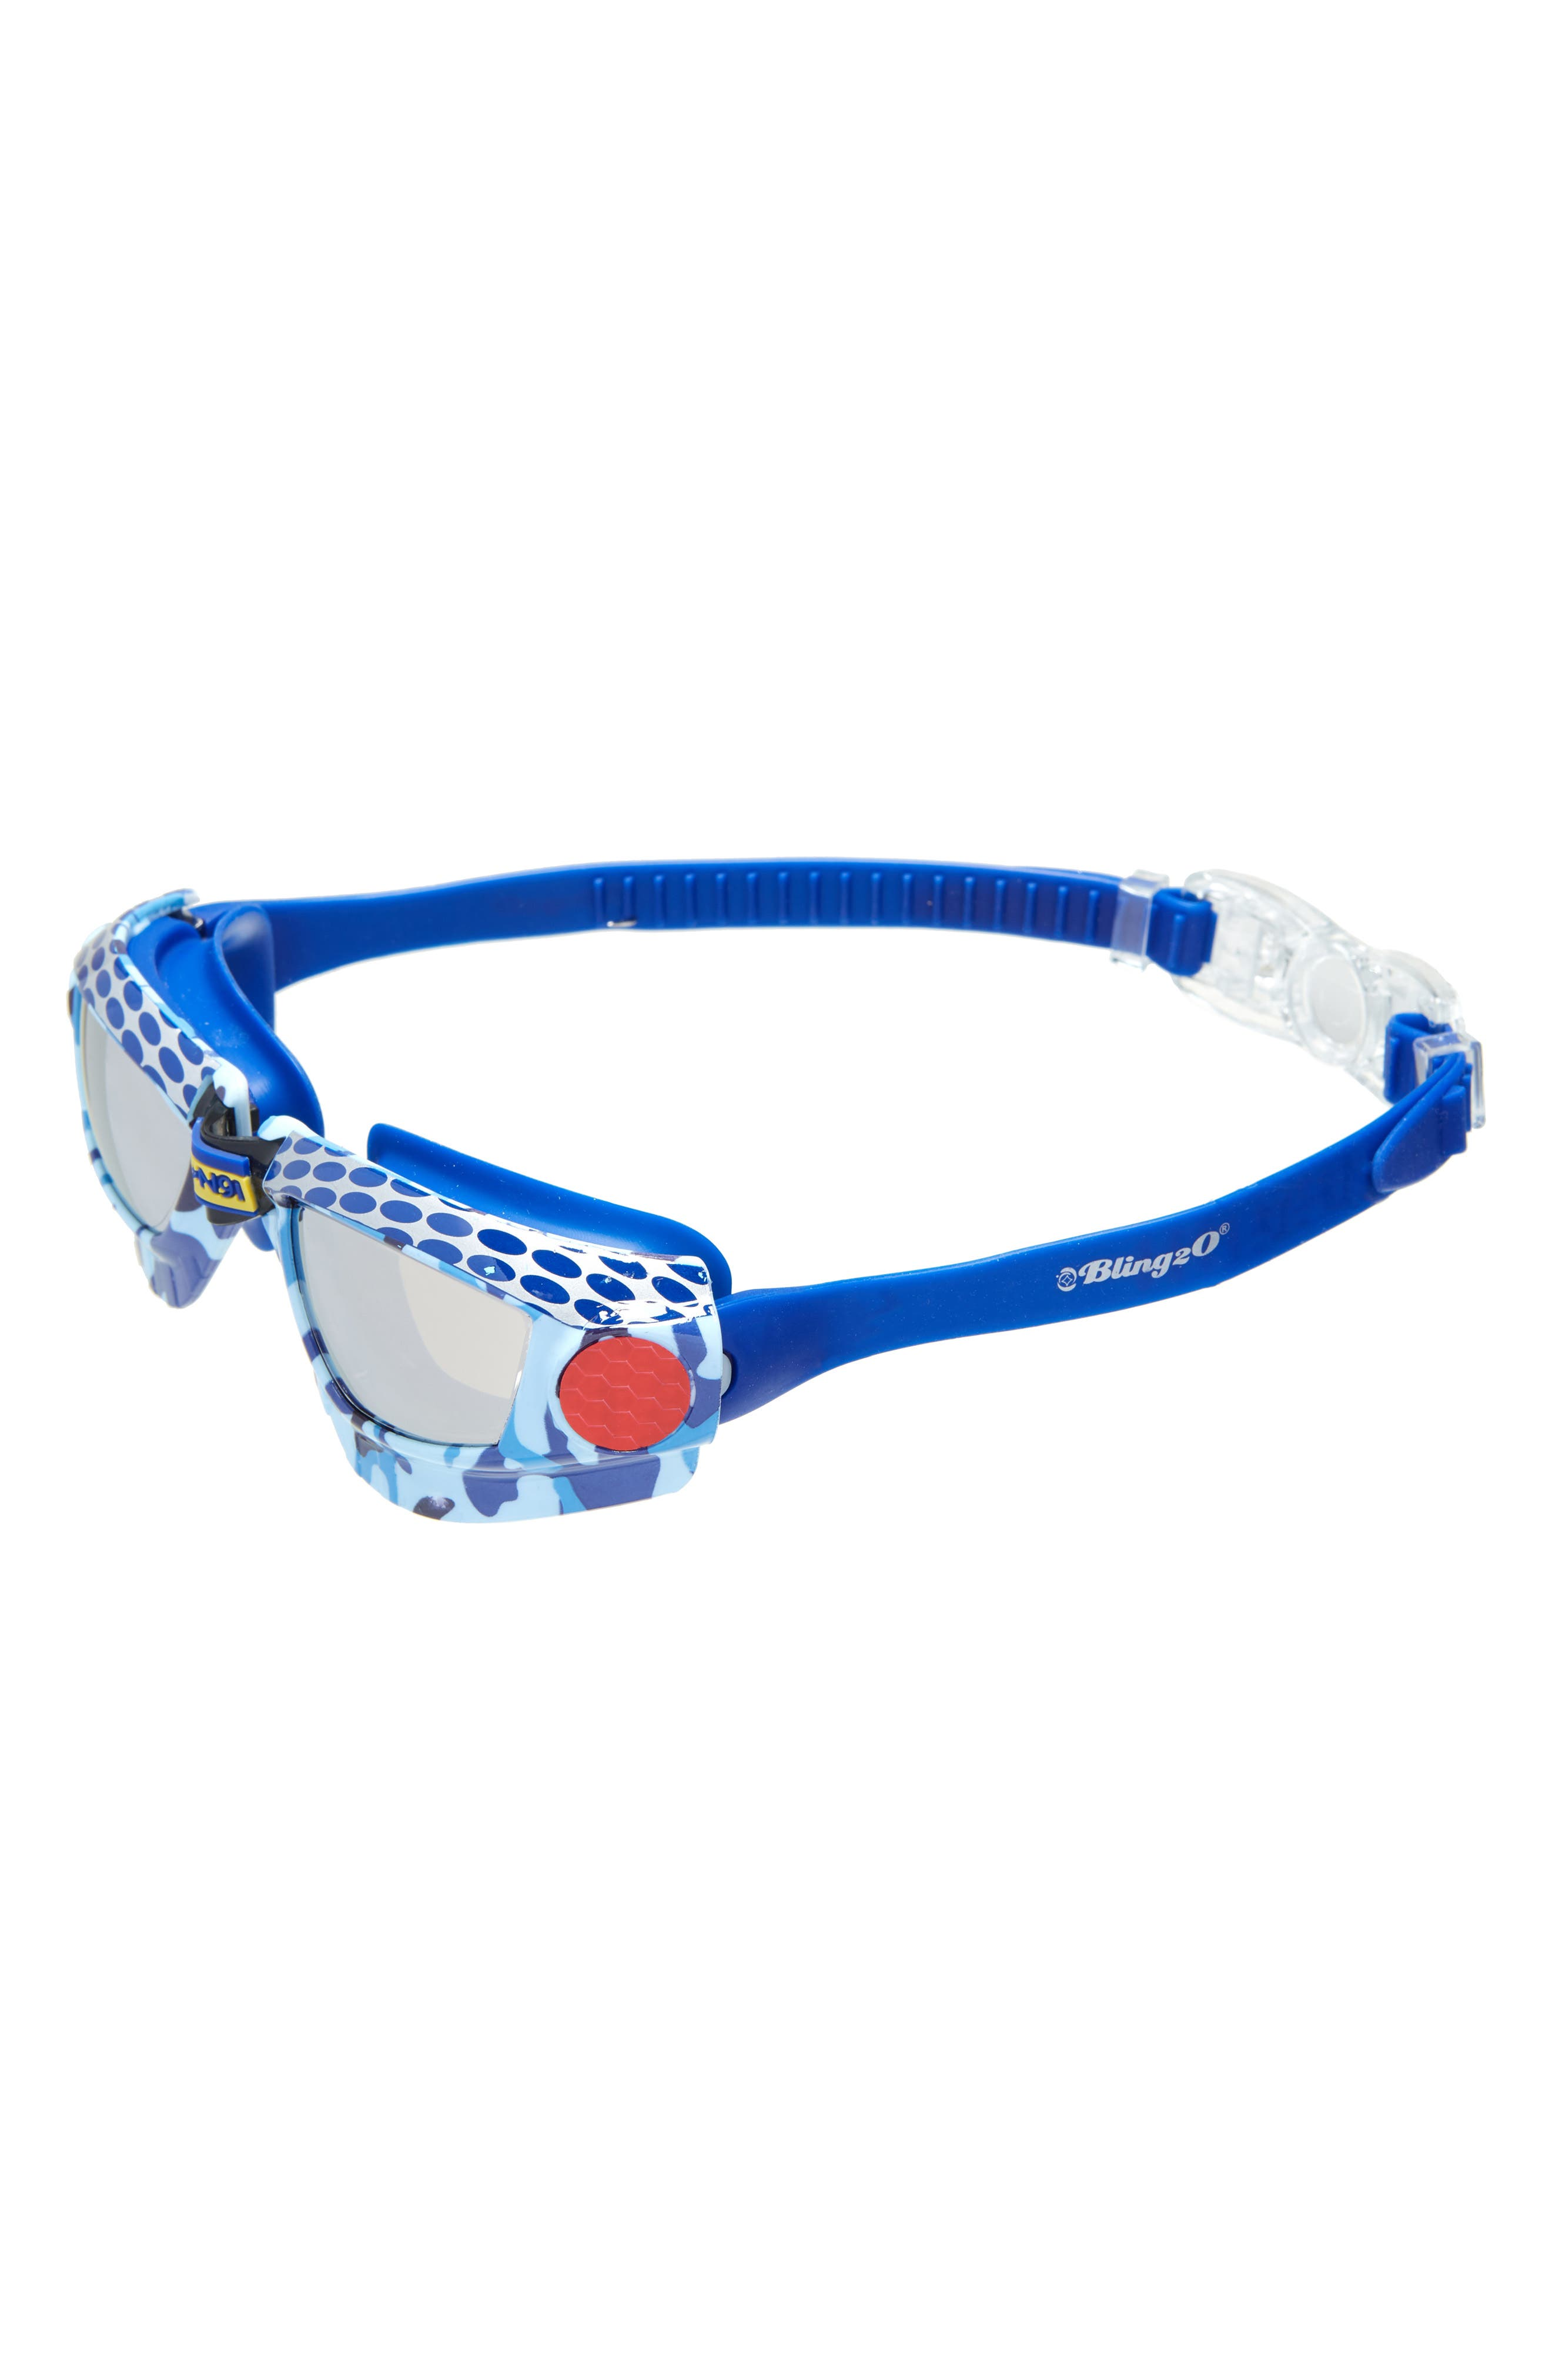 Mud Racer Swim Goggles,                         Main,                         color, Blue